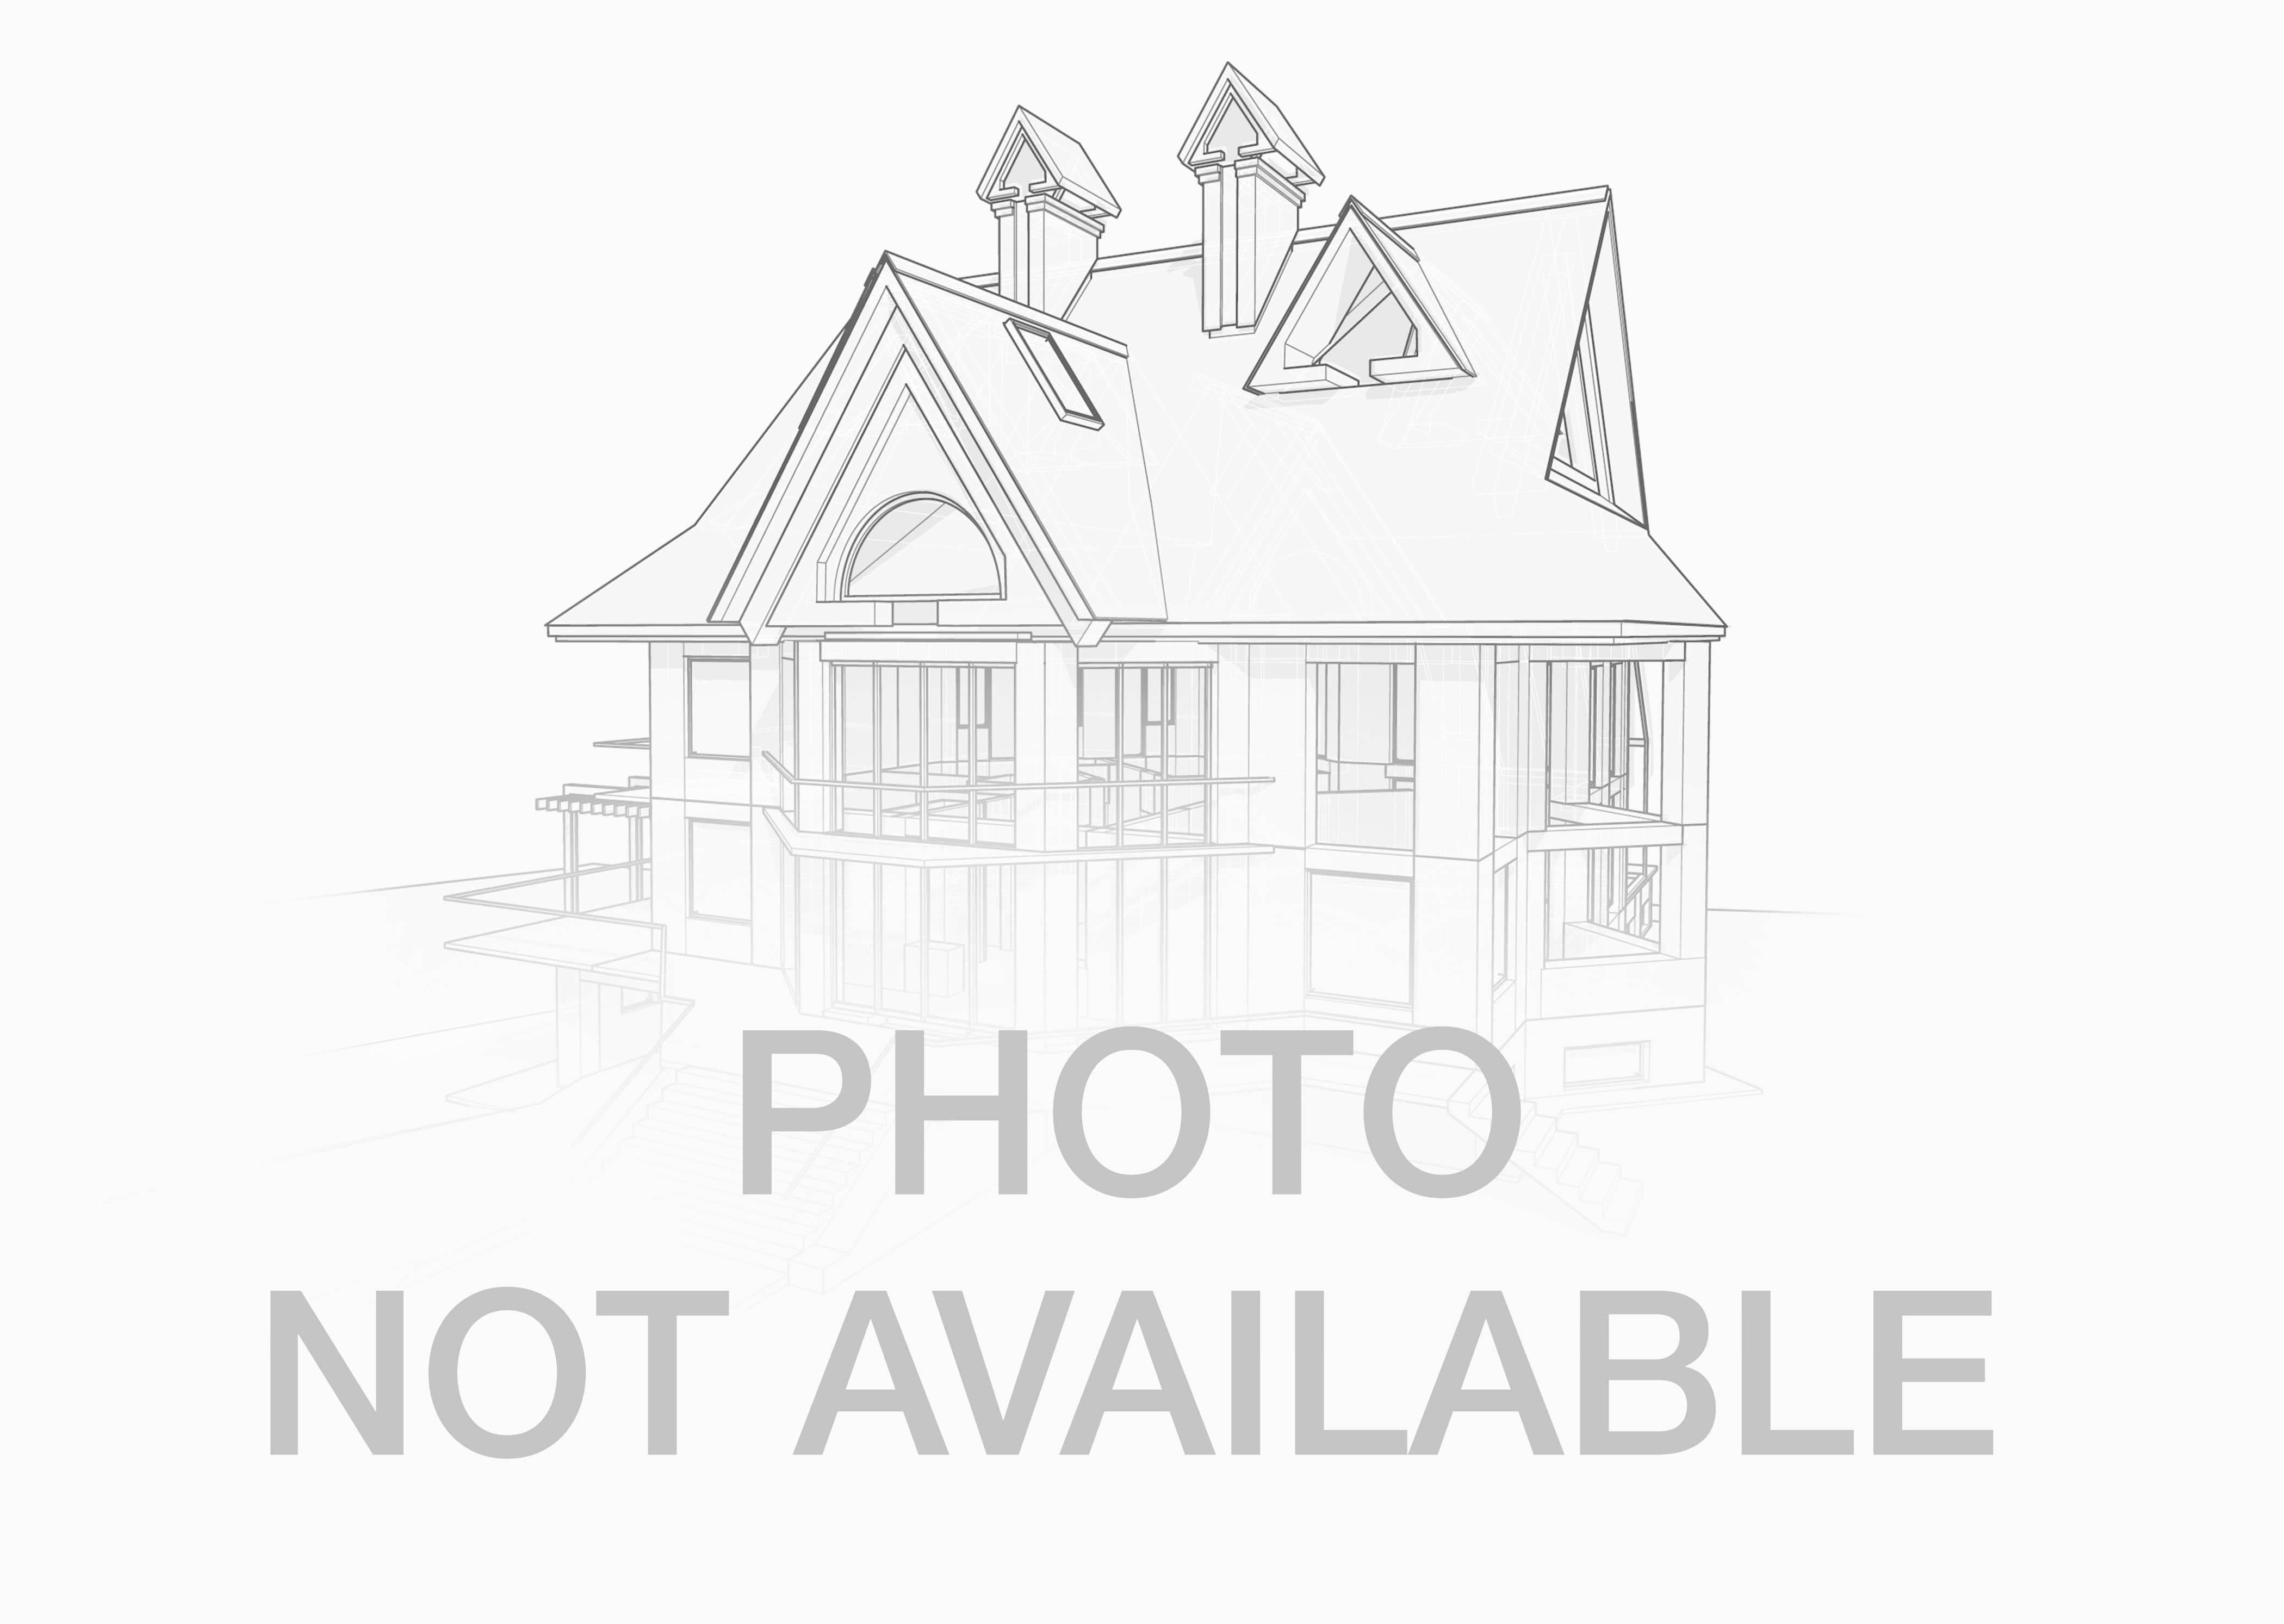 Woodbridge Va Homes For Sale And Real Estate Page 69 From Virginia